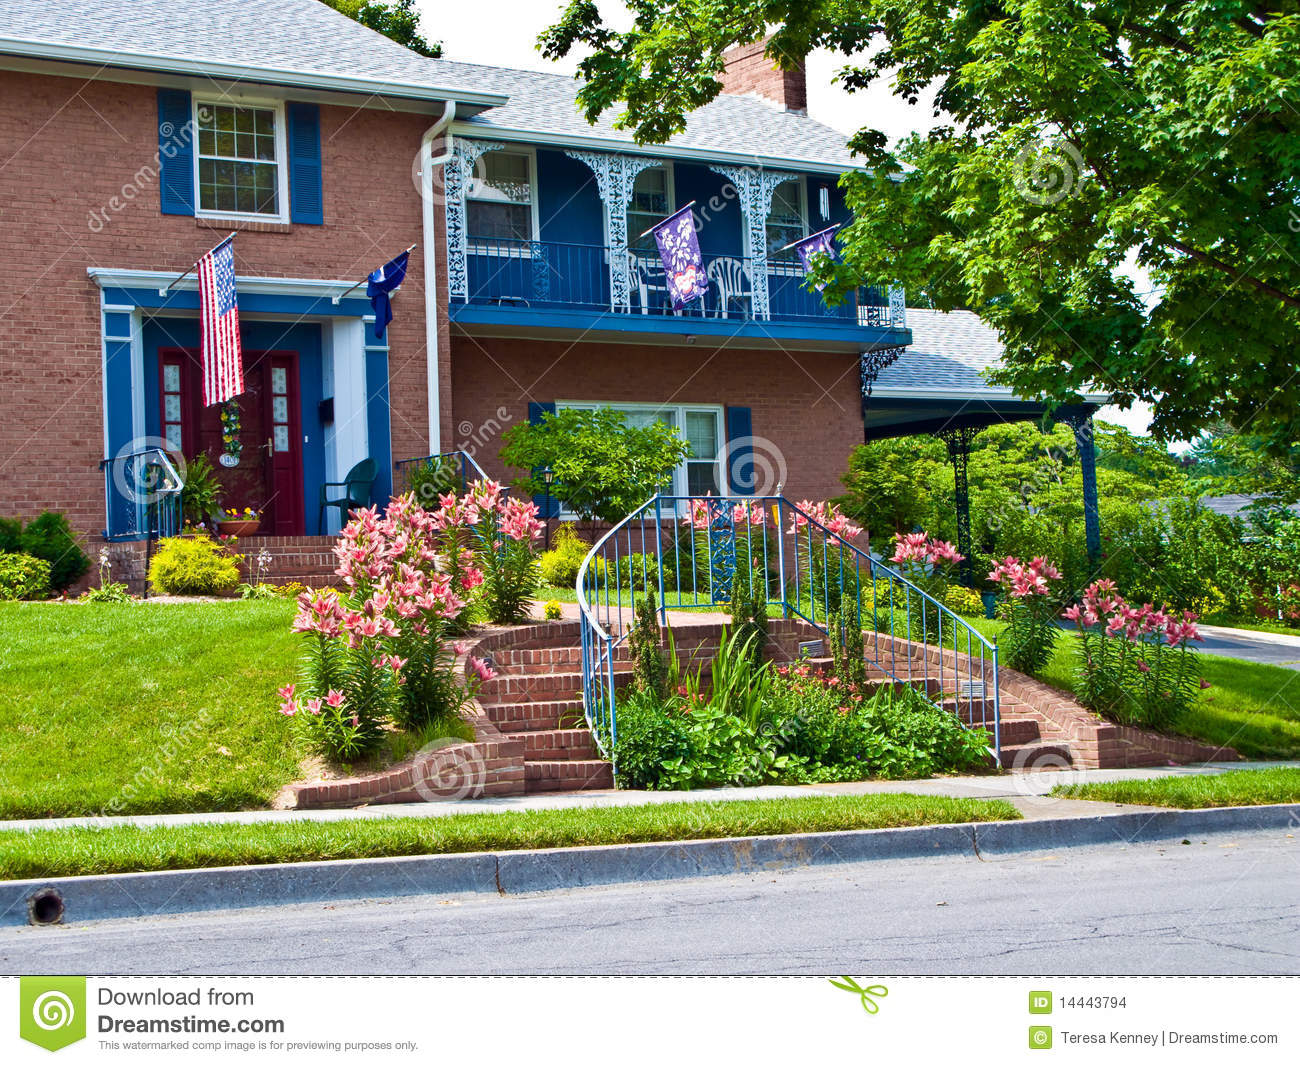 Beautiful Landscaping beautiful landscaping stock images - image: 14443794